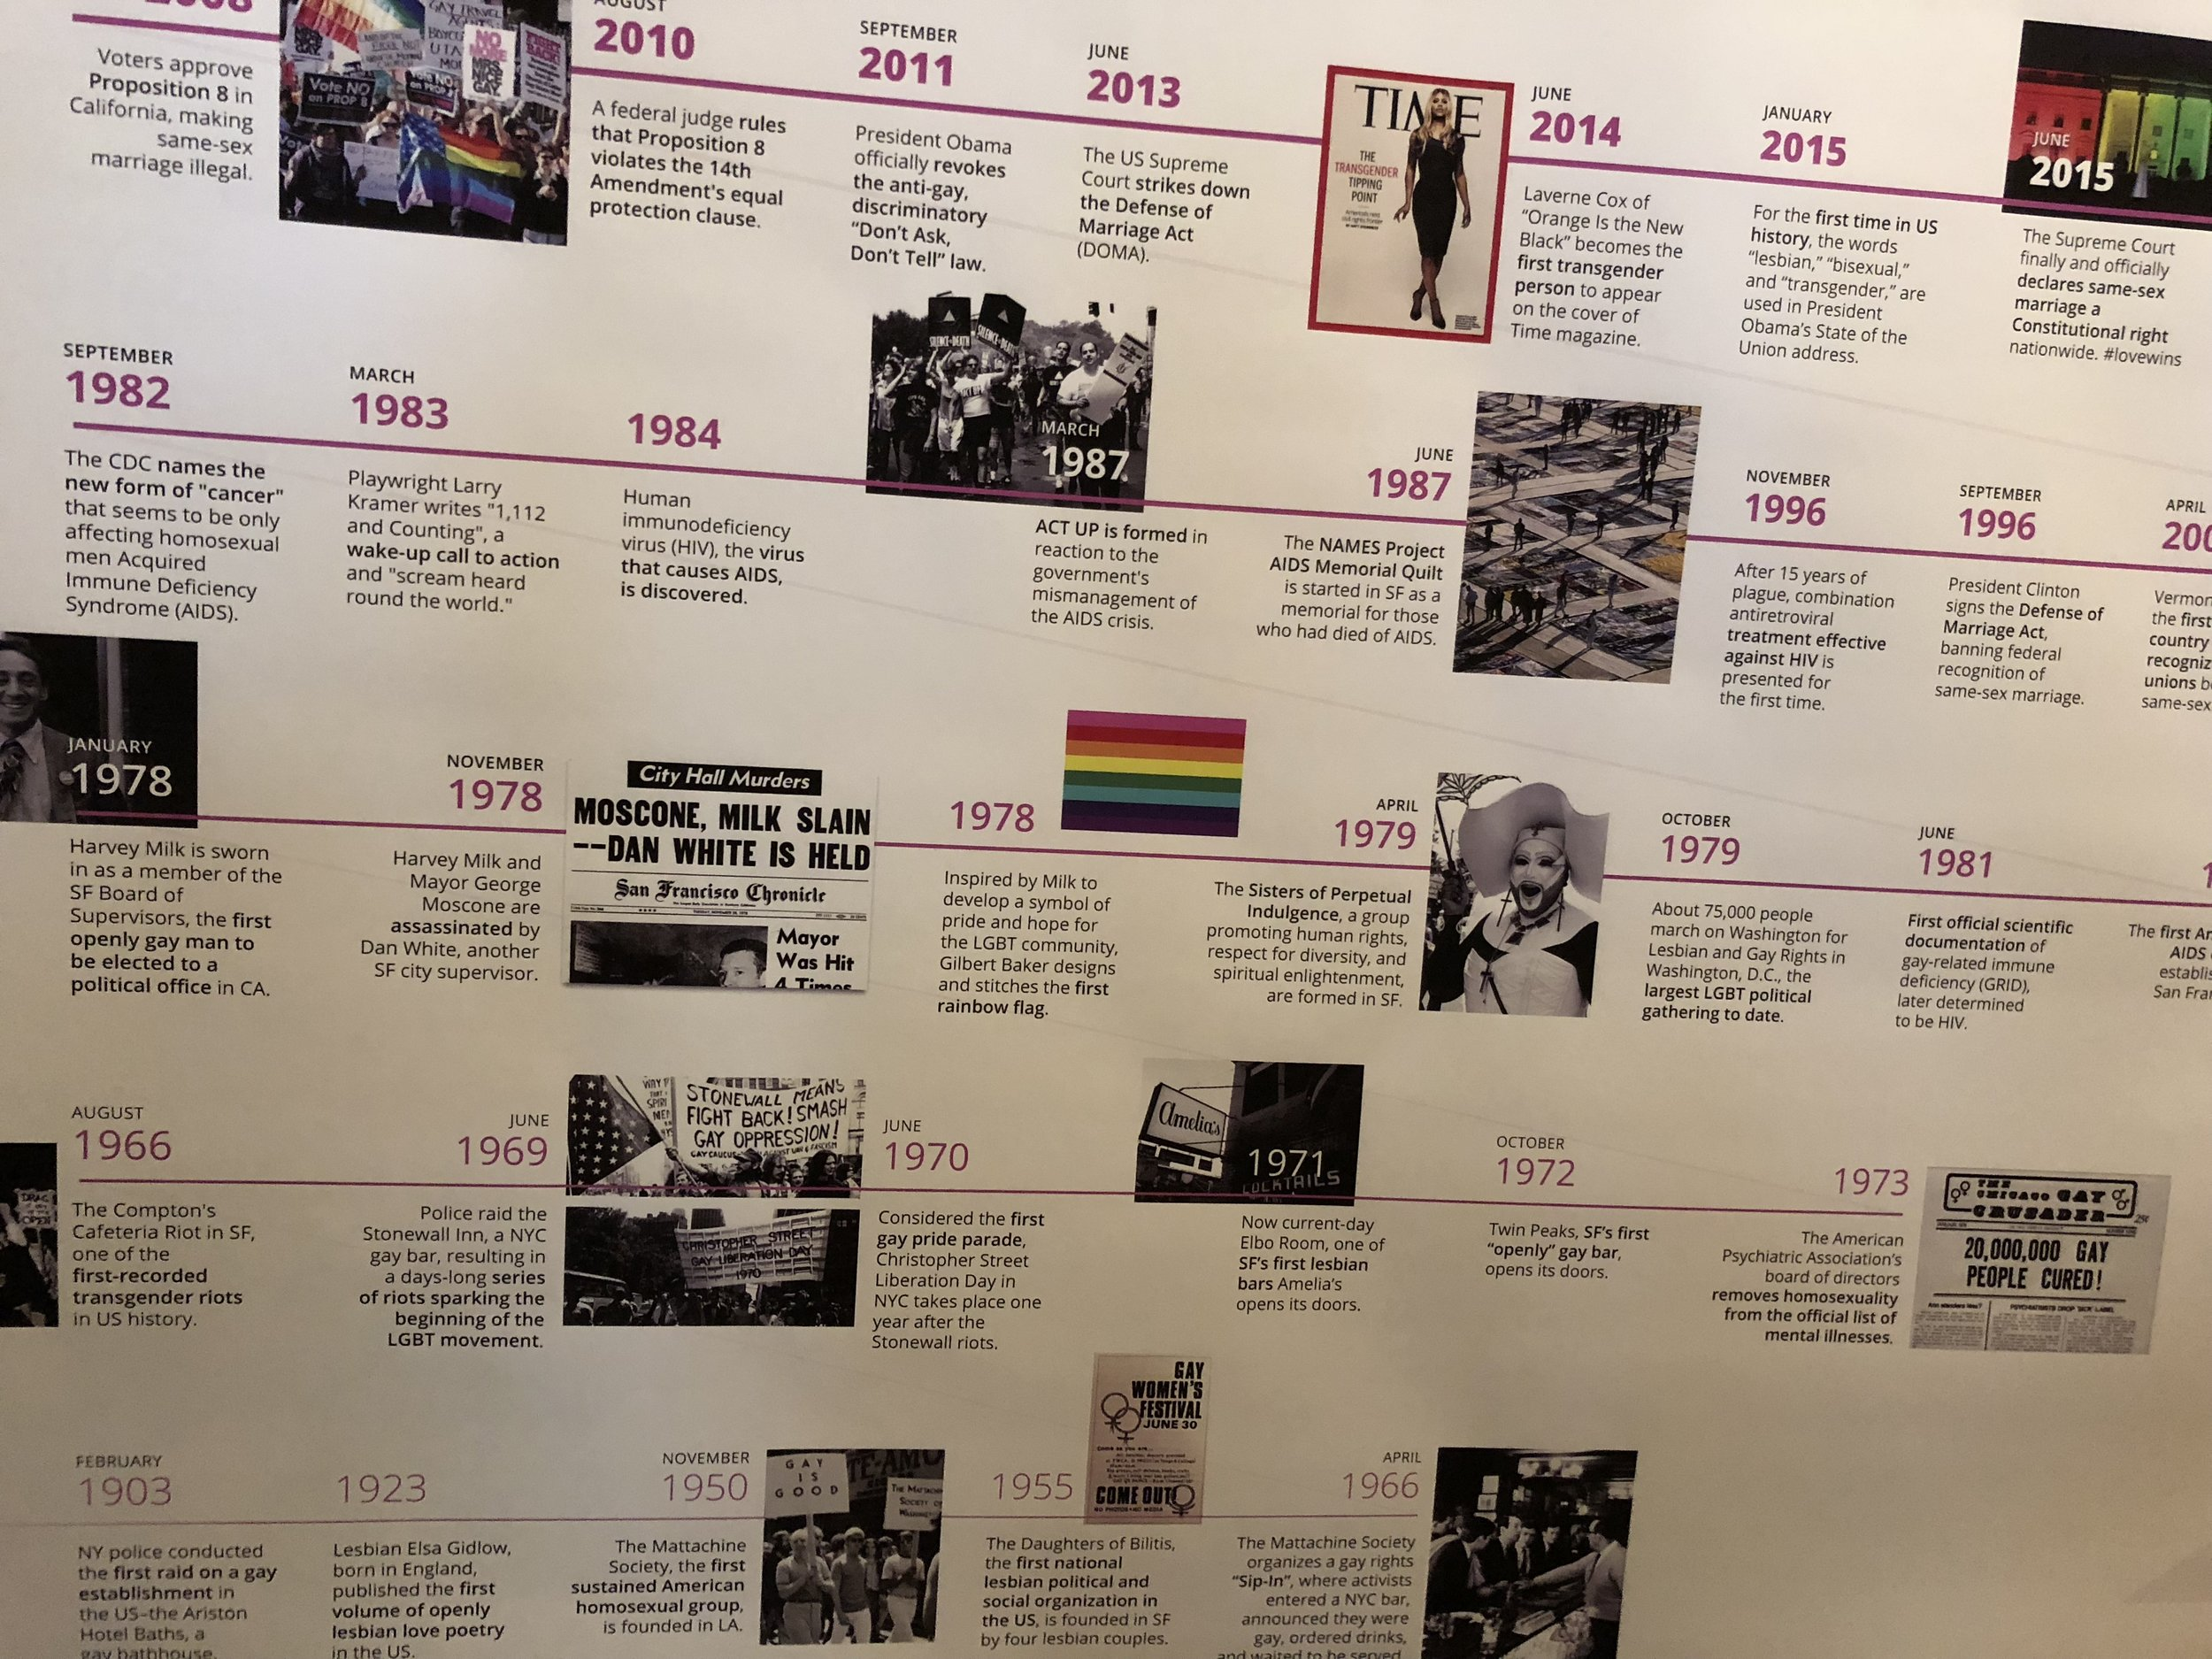 The timeline displays major events in the gay rights movement.